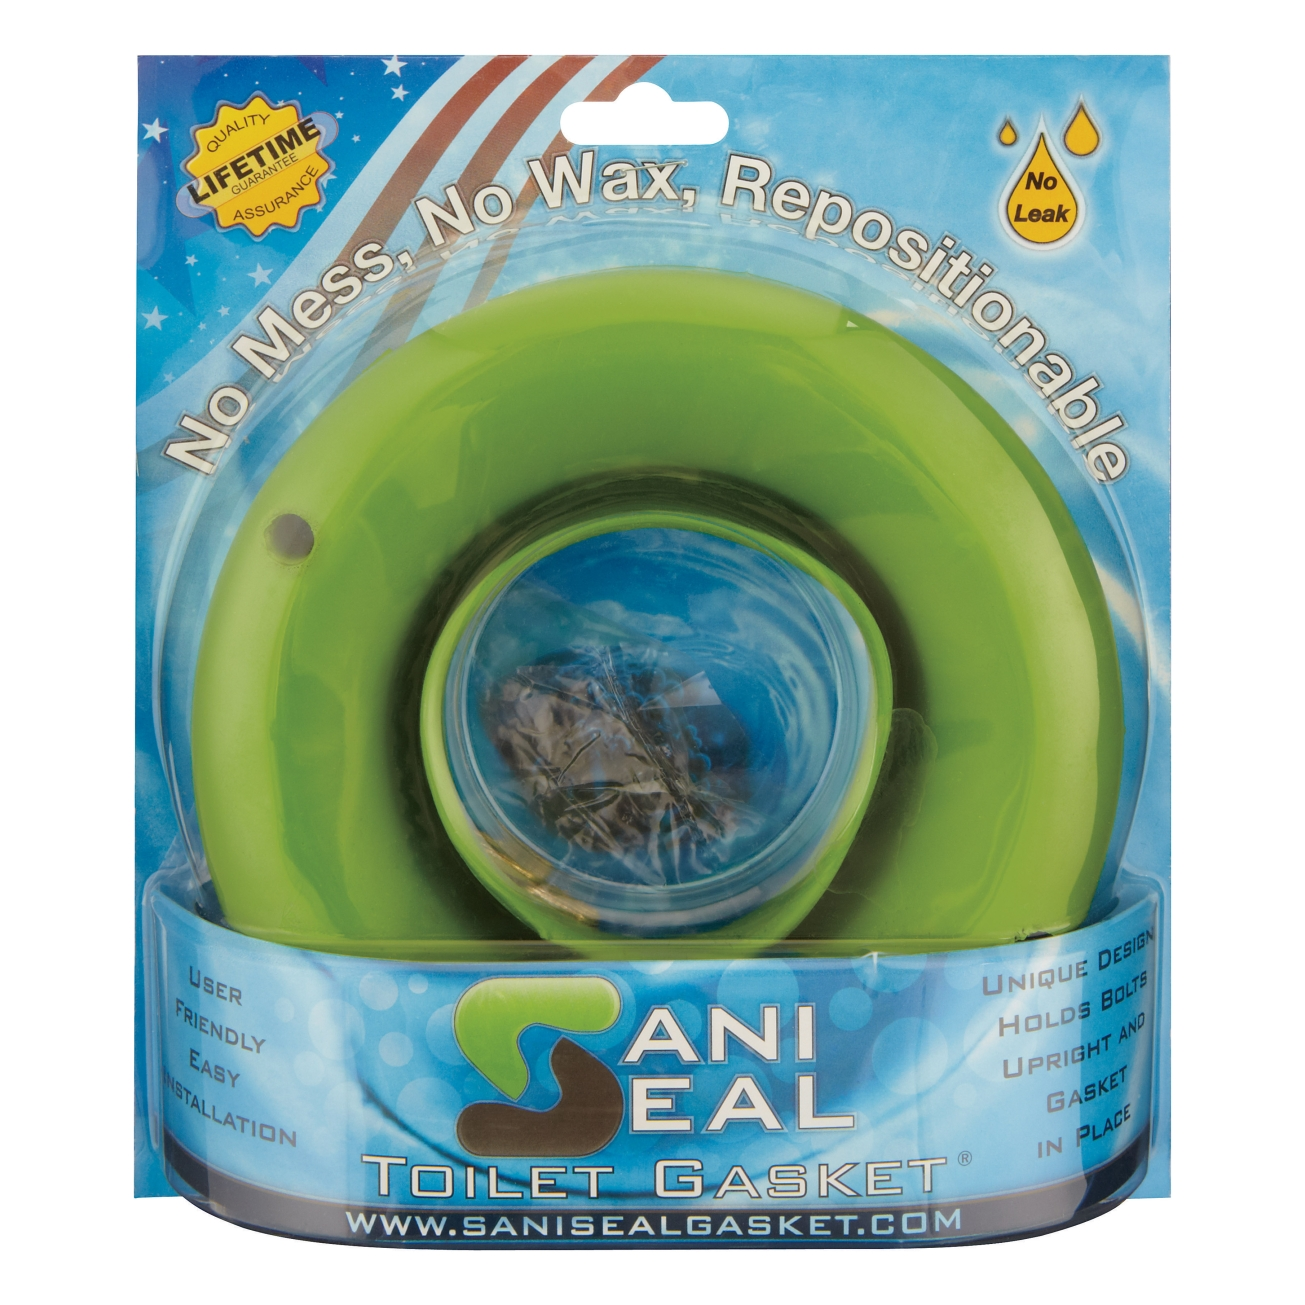 Sani Seal Toilet Gasket Reviews